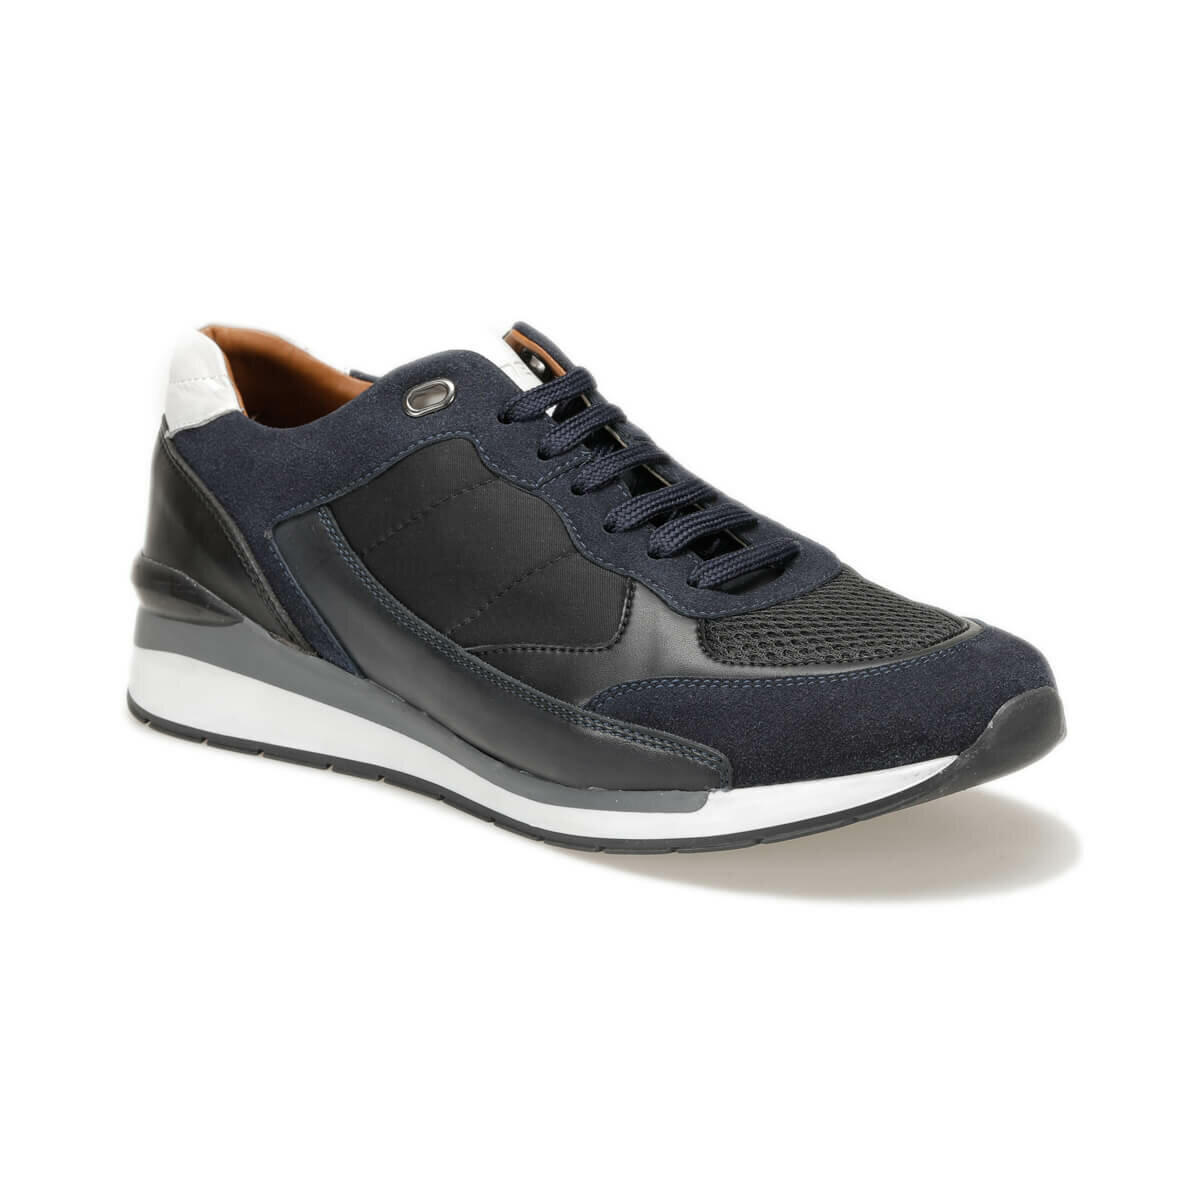 FLO CLIVE 9PR Navy Blue Men 'S Sneaker Shoes KINETIX